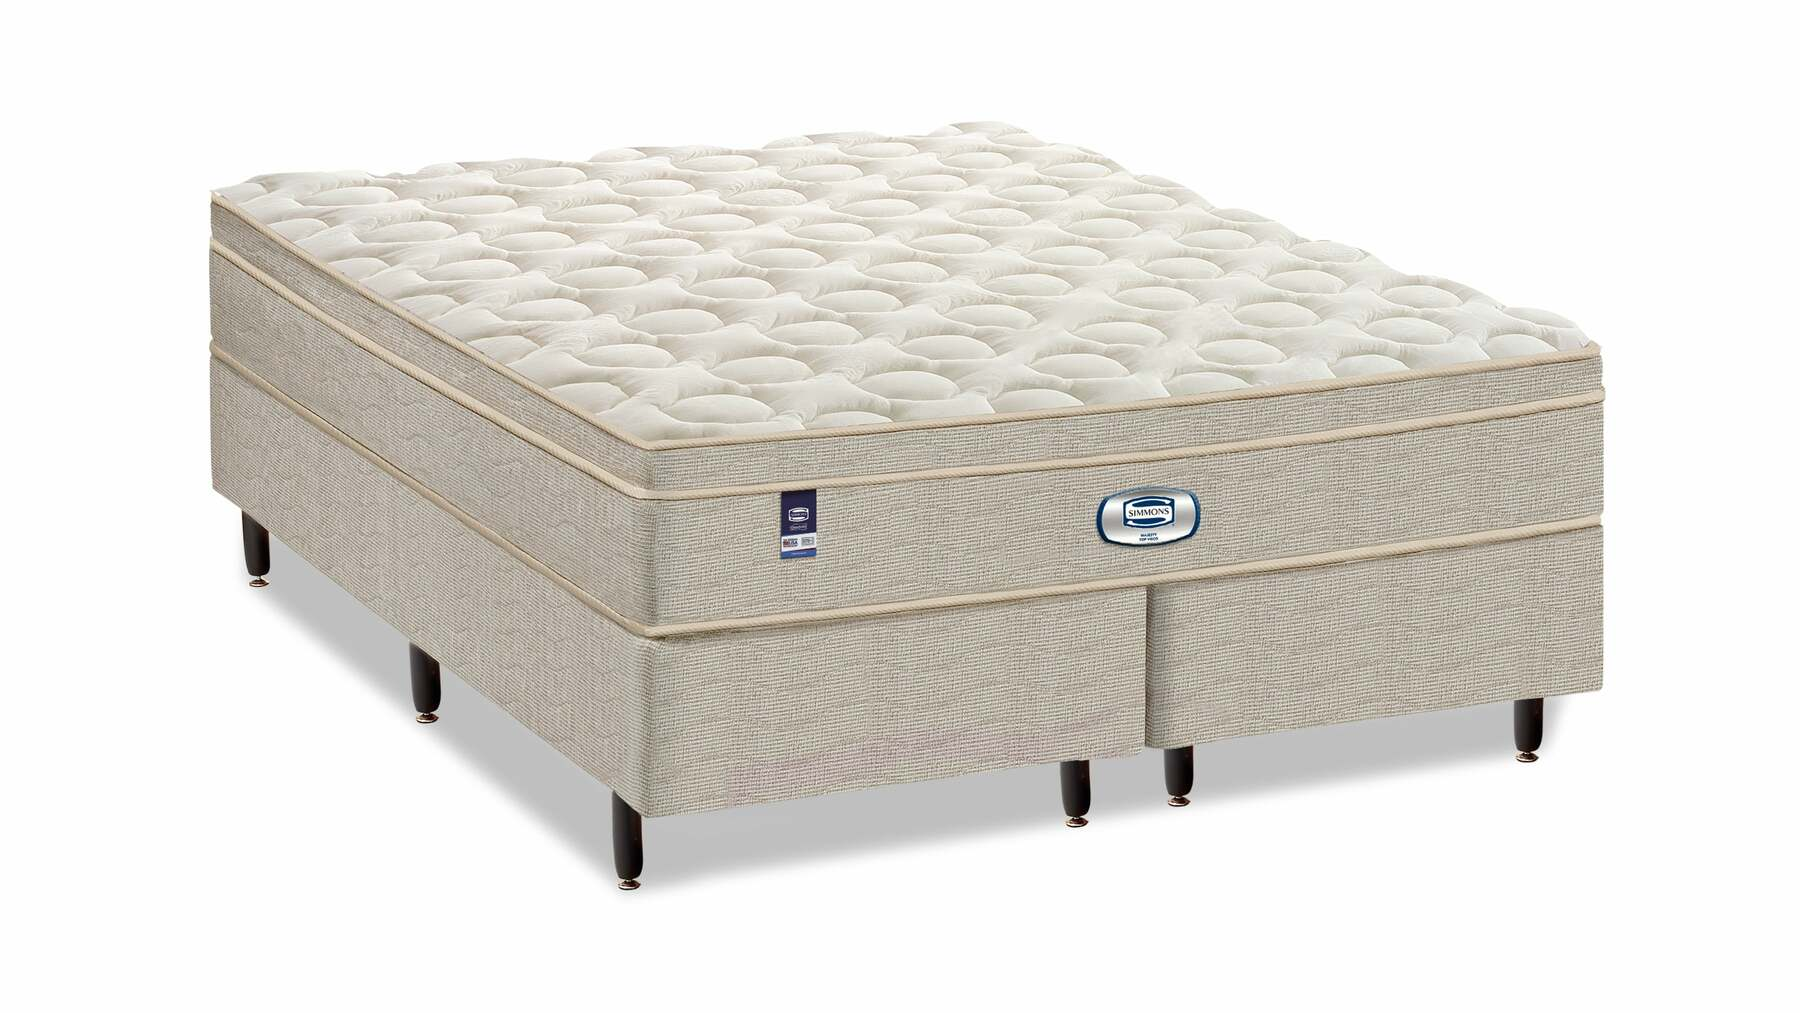 Cama Box Com Colchão King Size Majesty Simmons com Molas Ensacadas